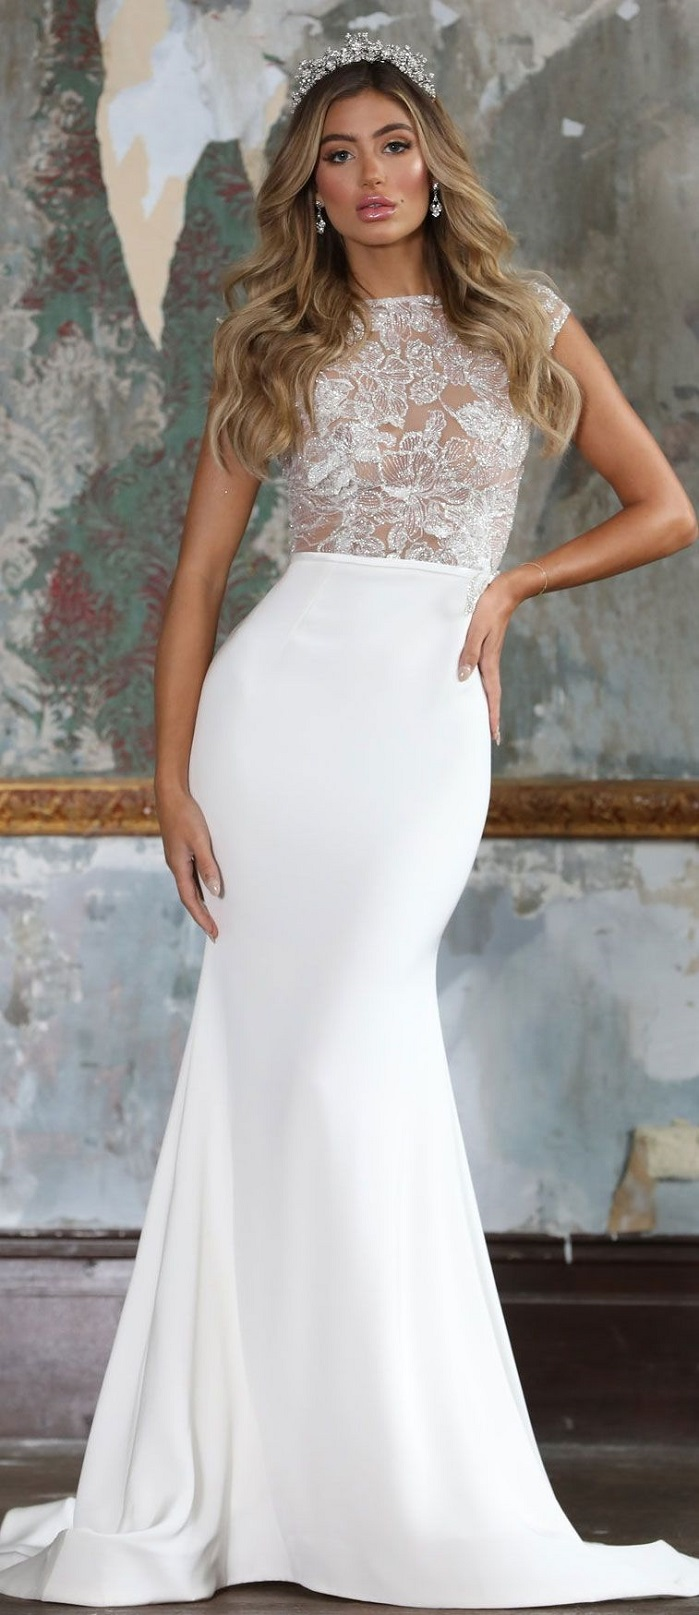 Sleeveless fit and flare wedding dress #weddingdress #weddinggown